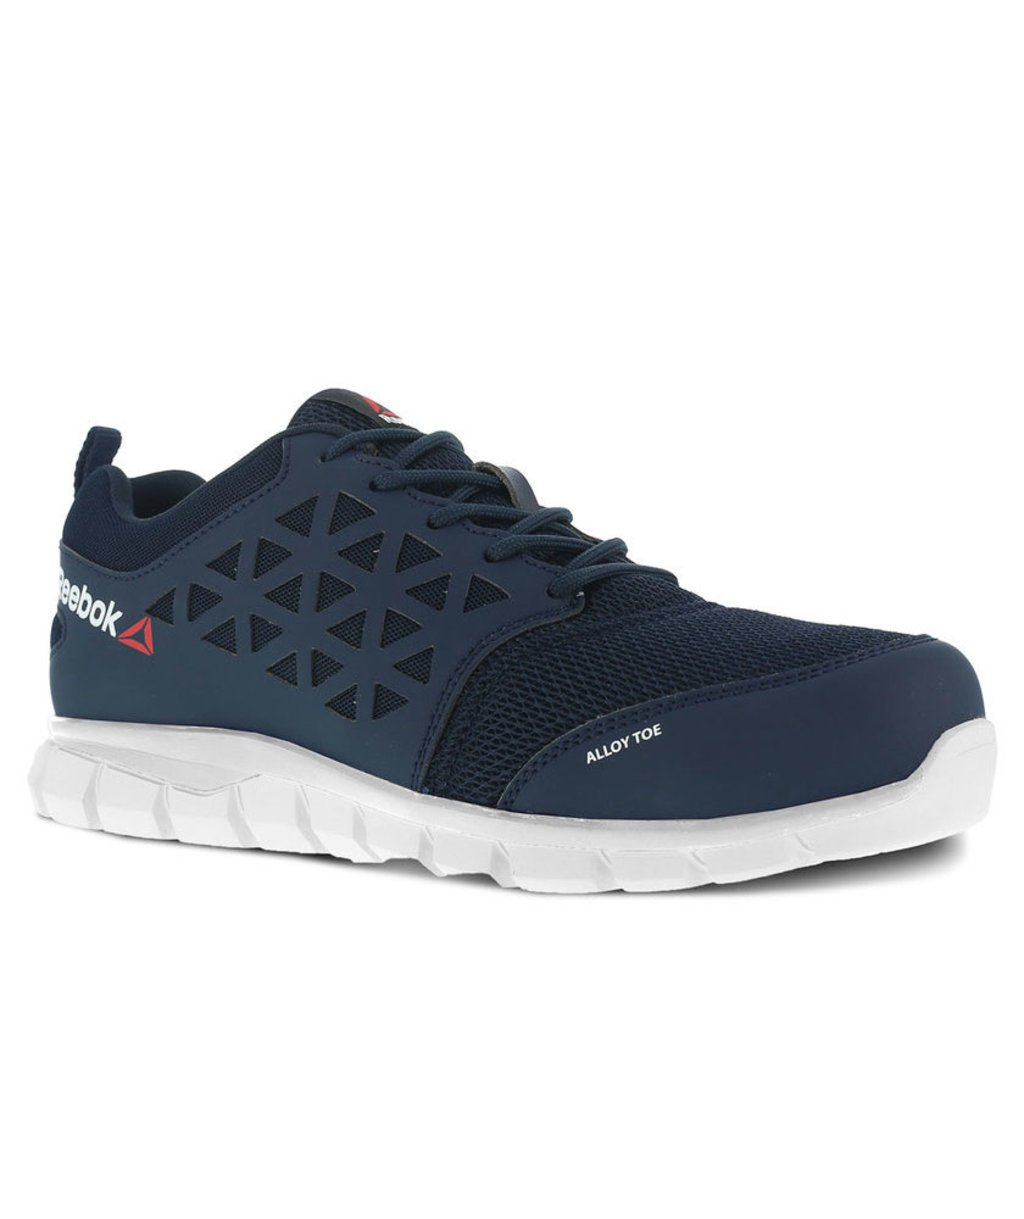 Reebok Blue Oxford safety shoes S1P, Navy